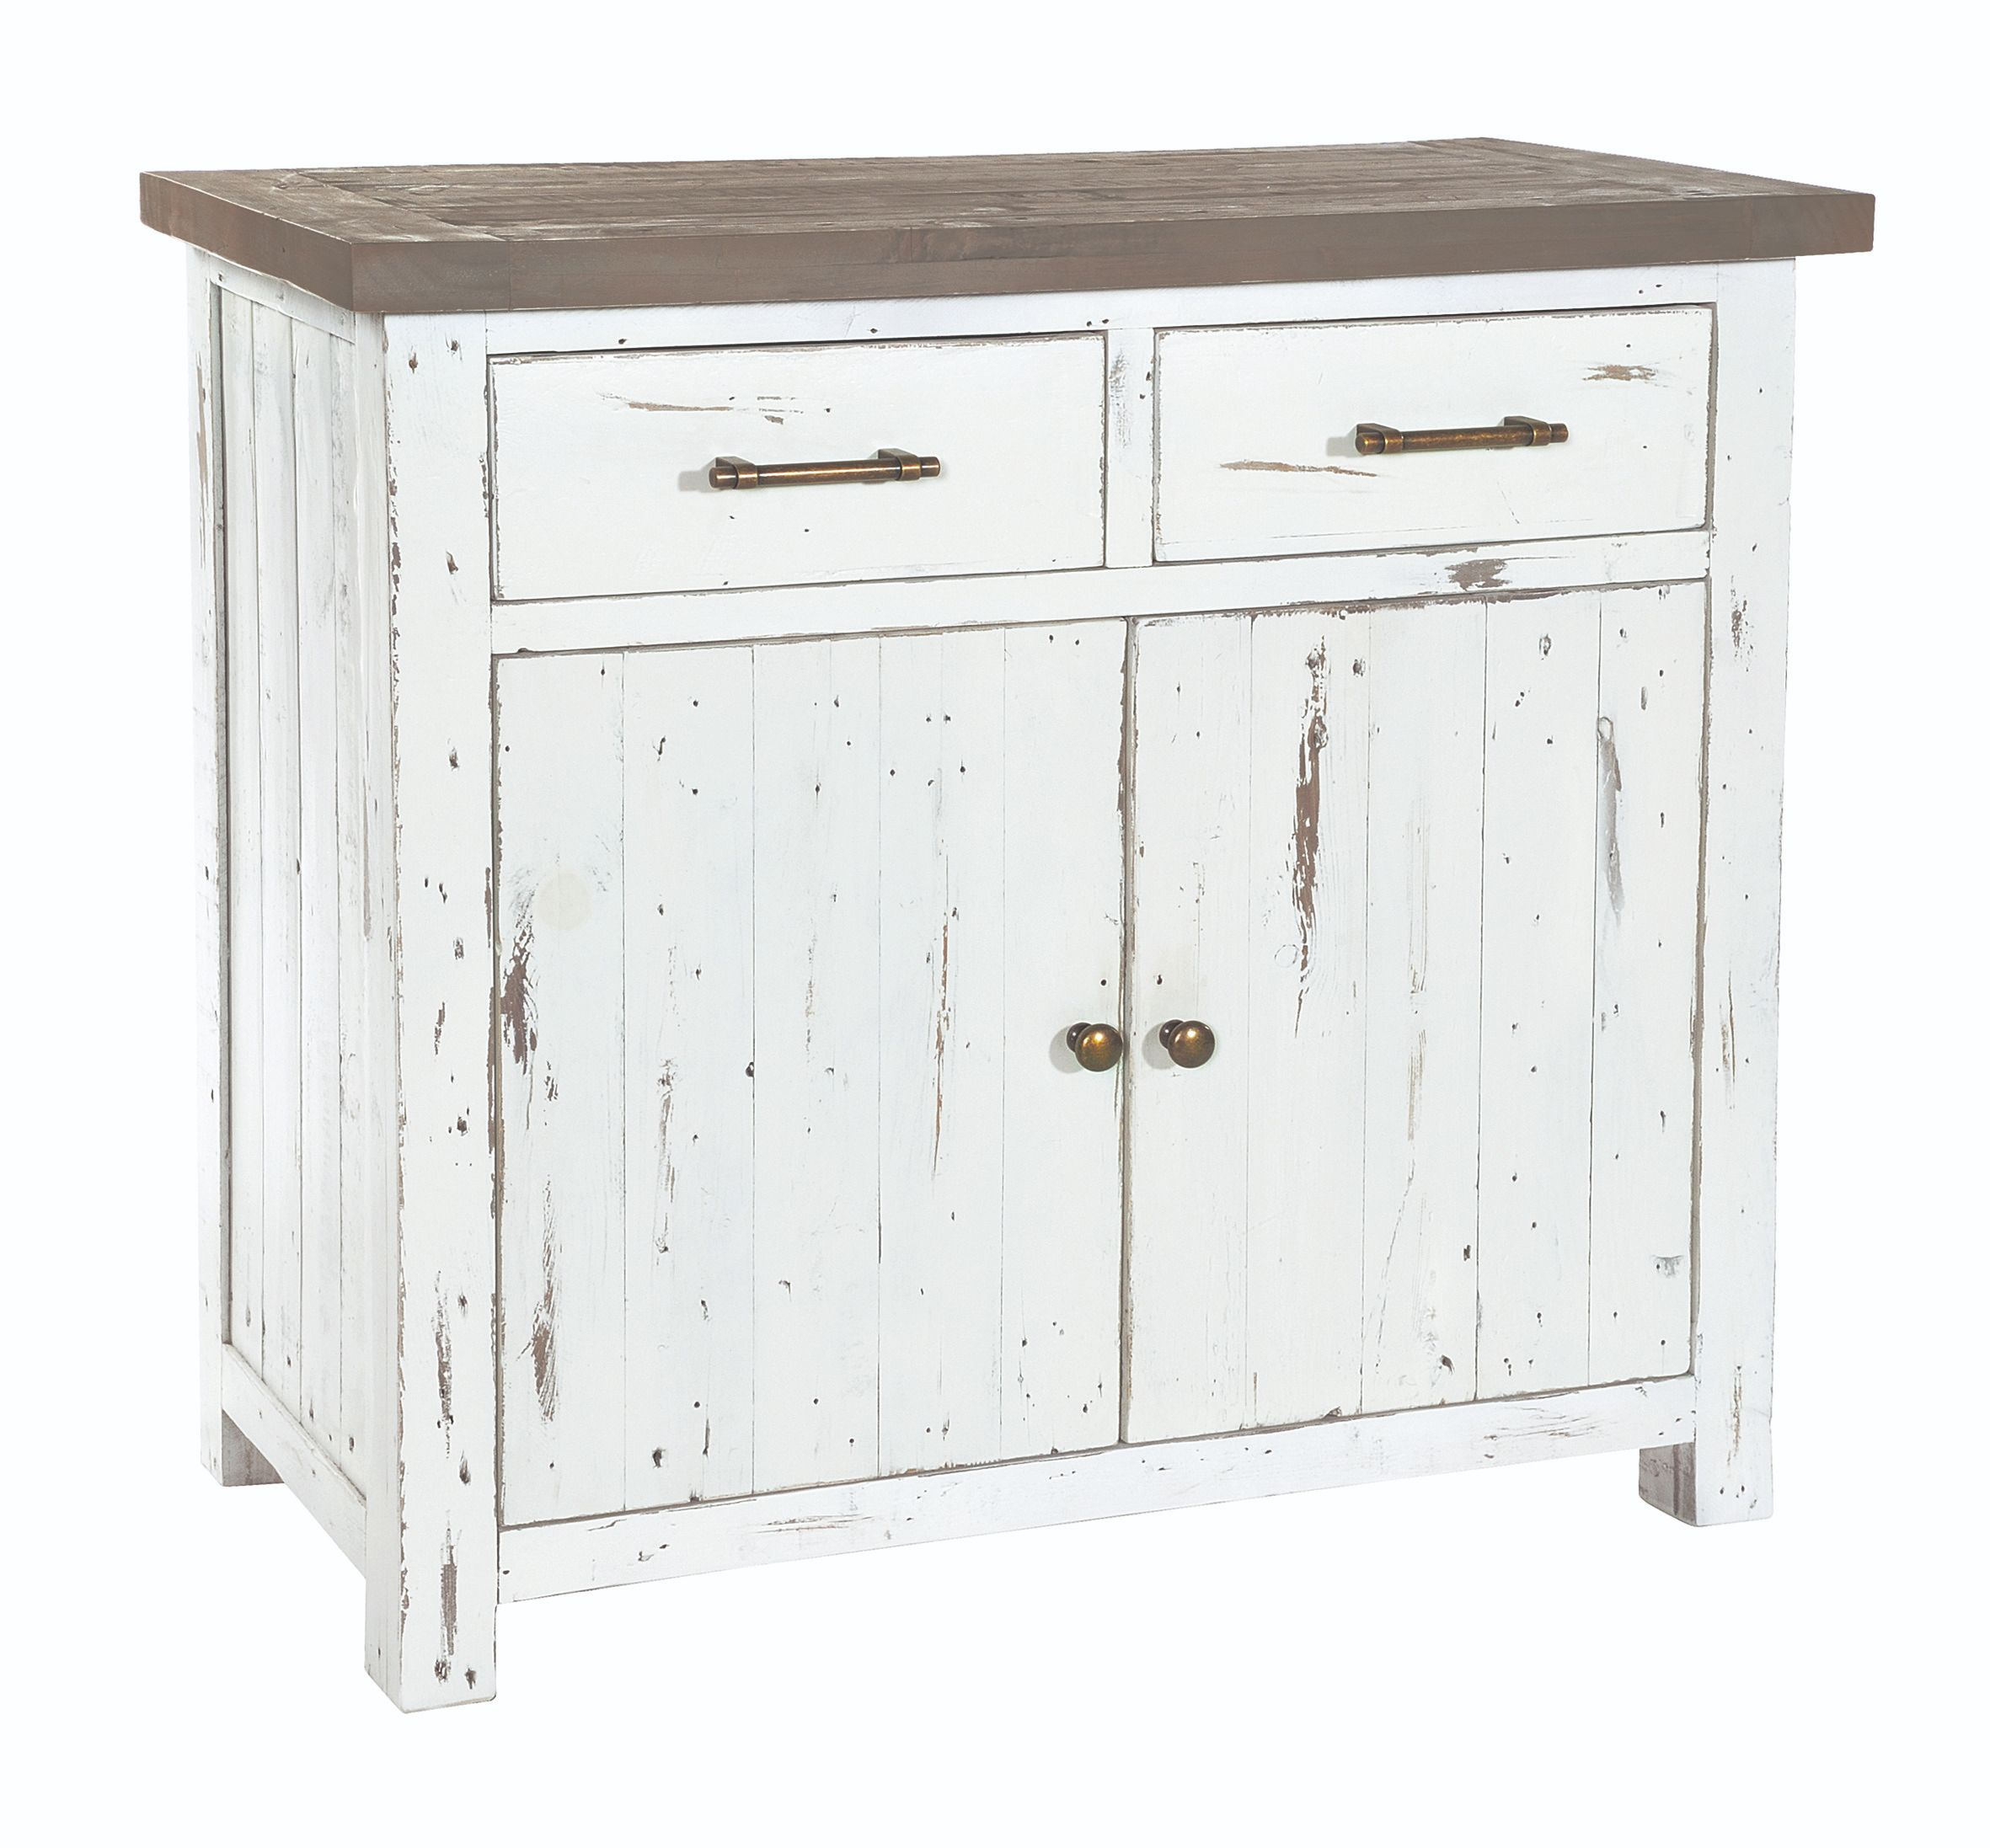 PURBECK SMALL SIDEBOARD Distressed Paint & Driftwood